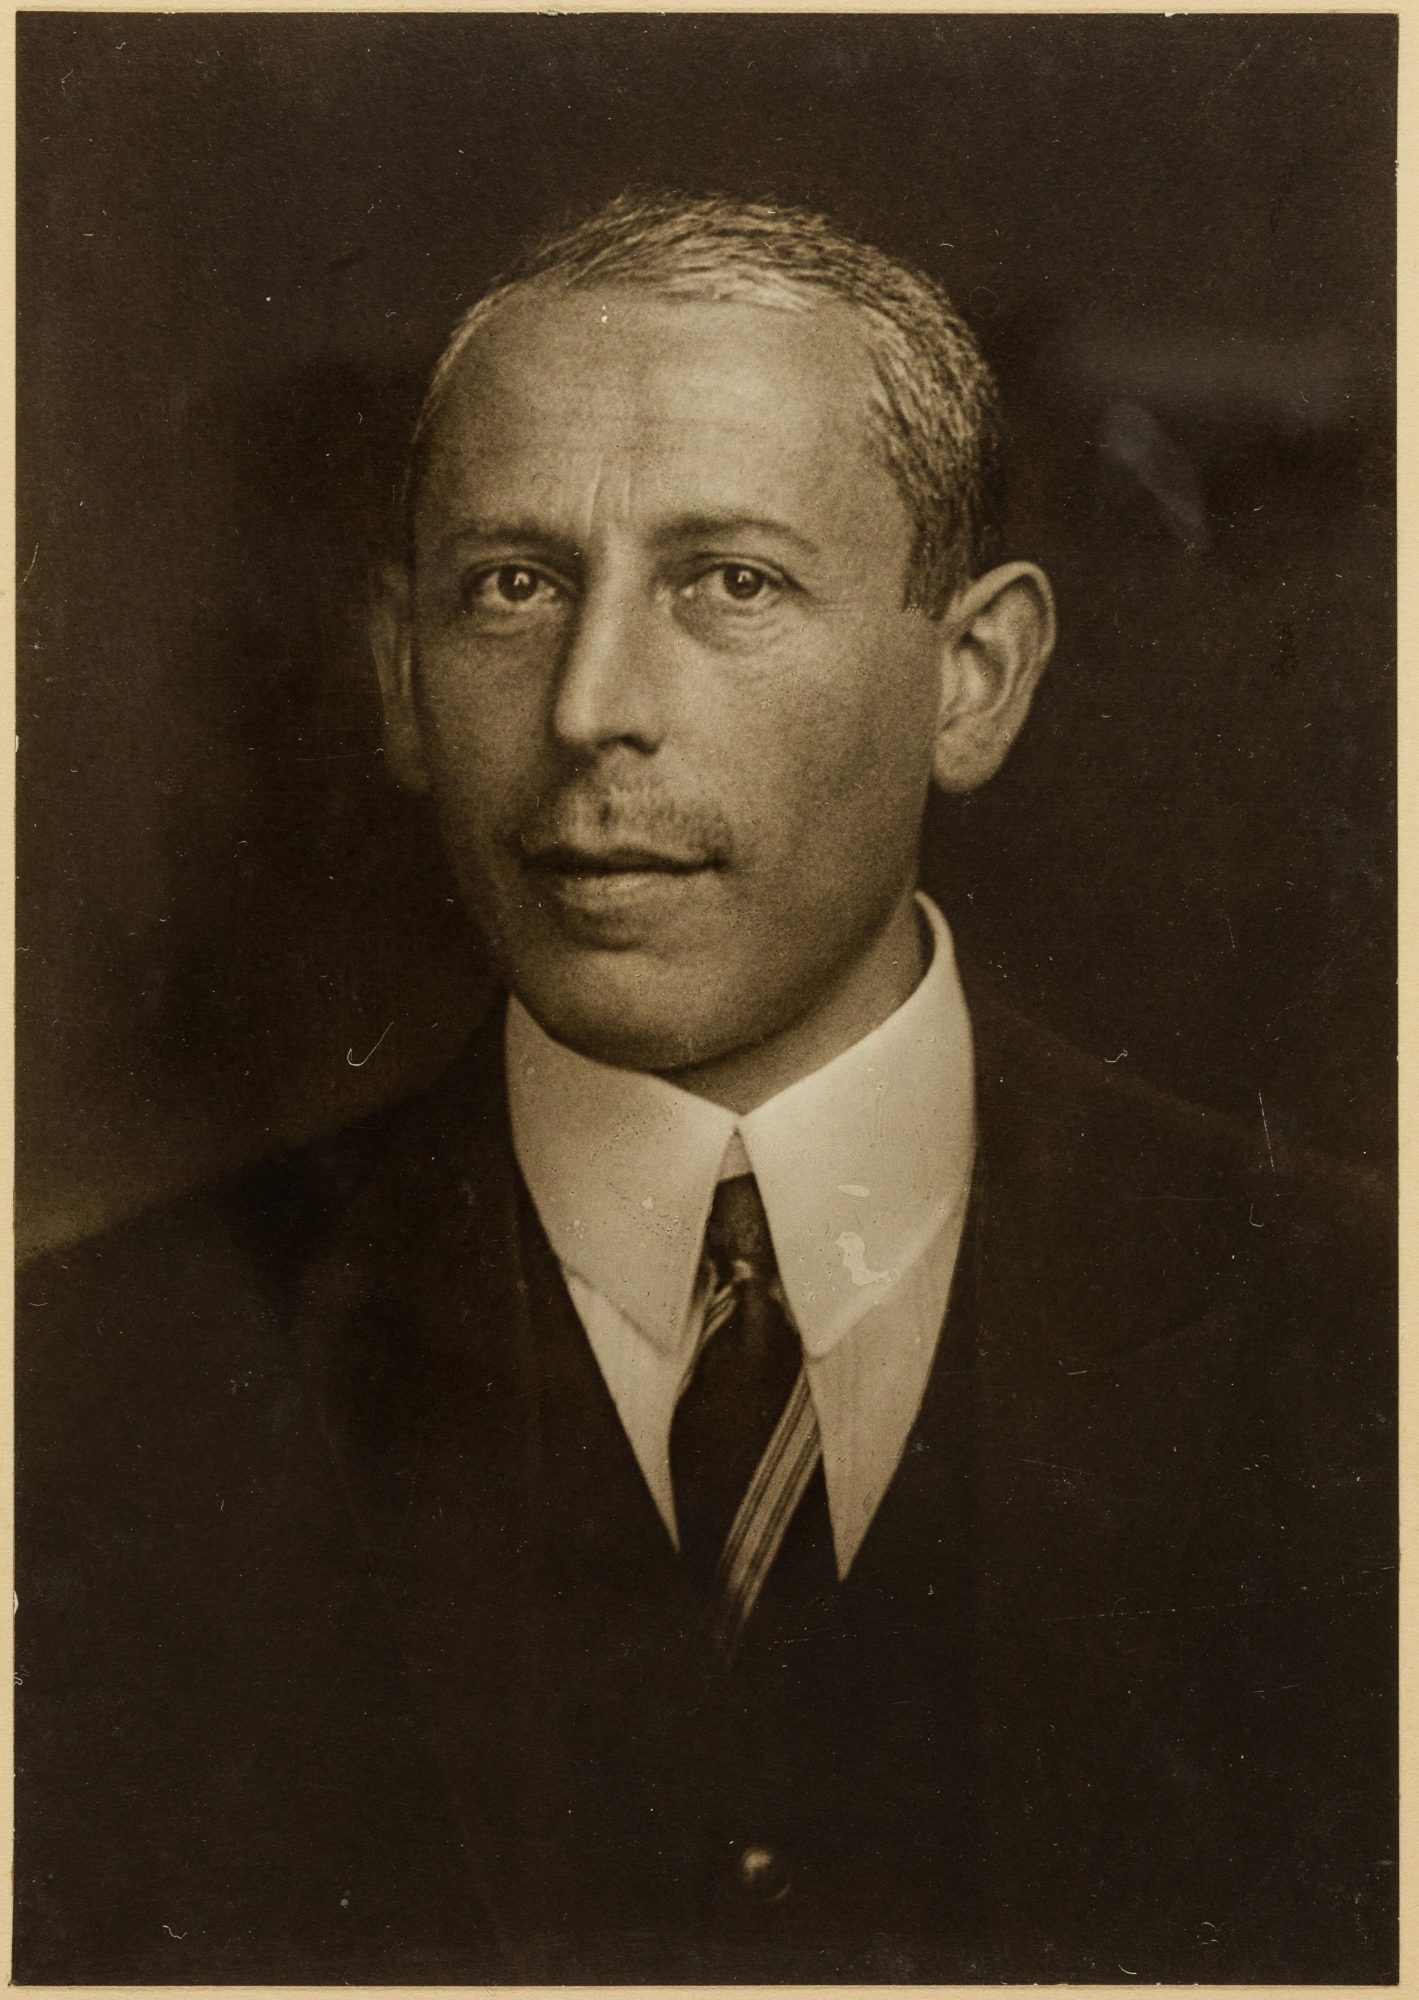 Photograph of psychoanalyst Karl Abraham